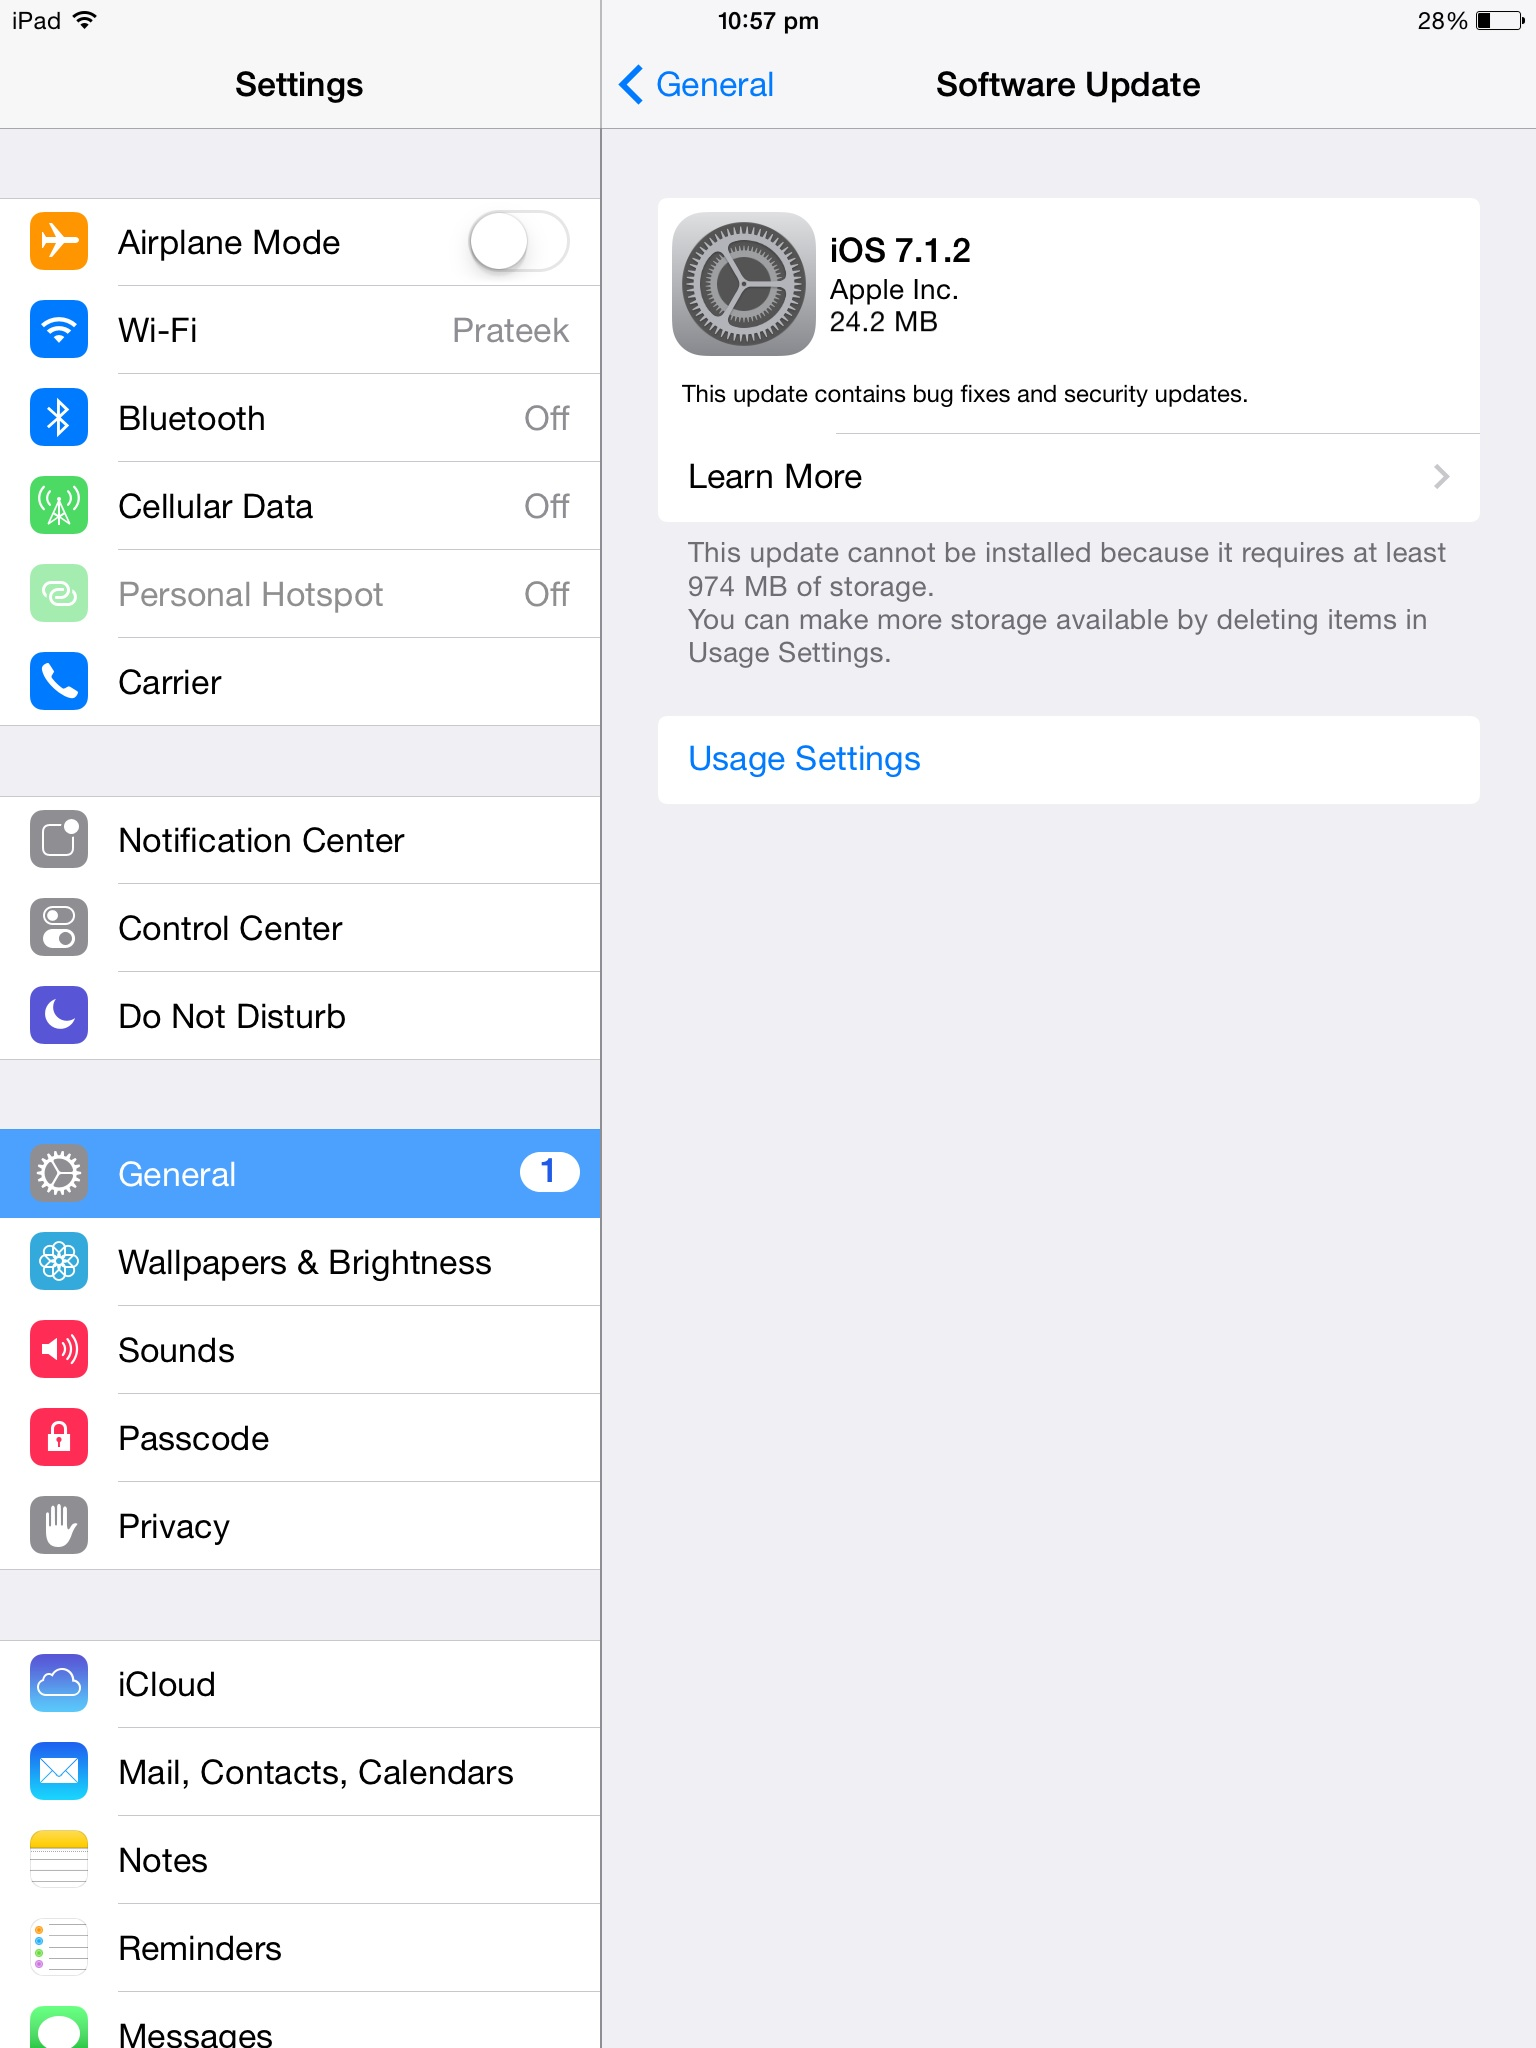 Update for iOS 7.1.2 on iPad